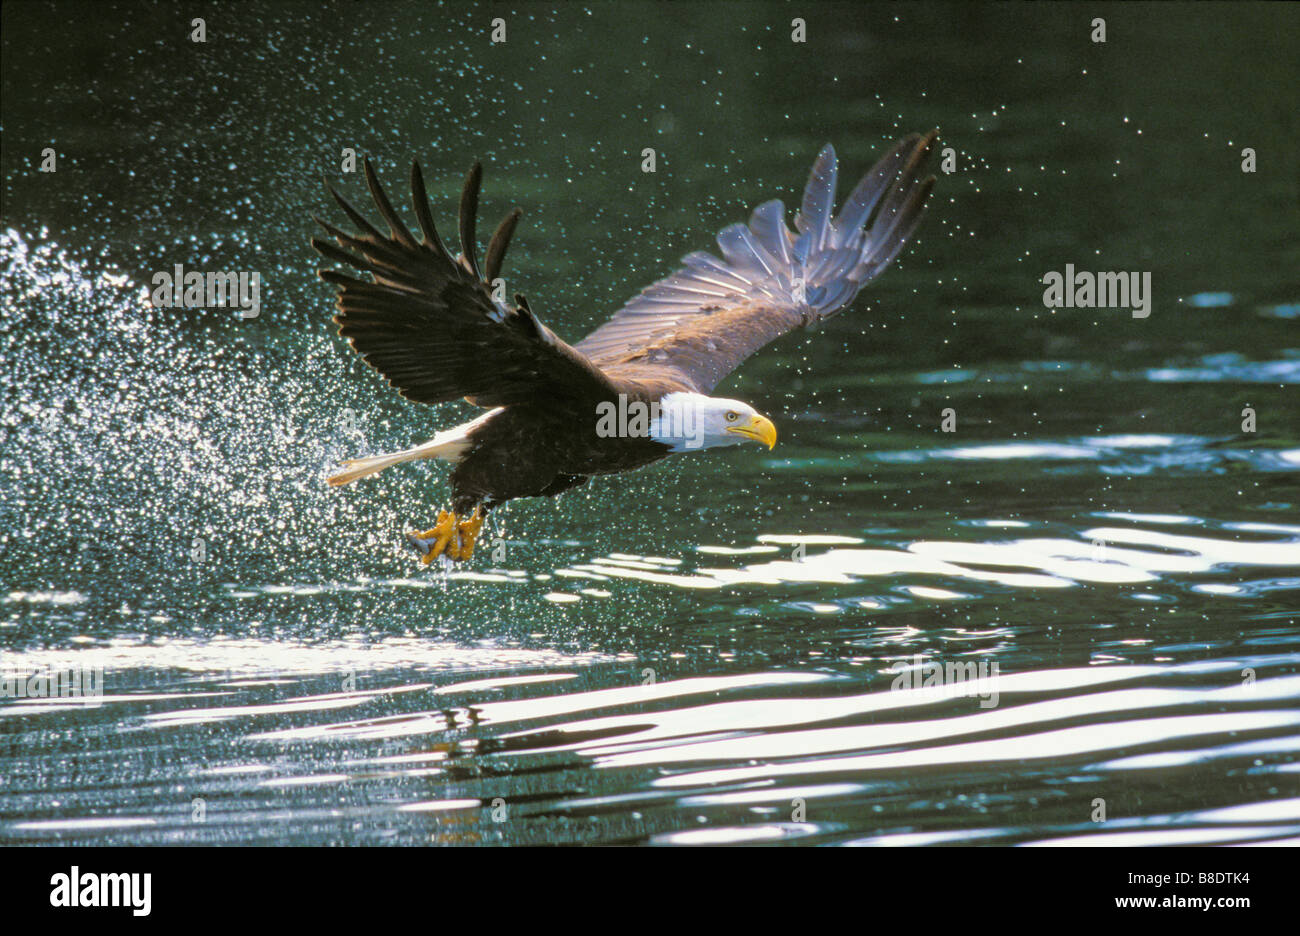 tk0699, Thomas Kitchin; Bald Eagle fish talons  Coastal British Columbia, Canada  Haliaeetus leucocephalus - Stock Image